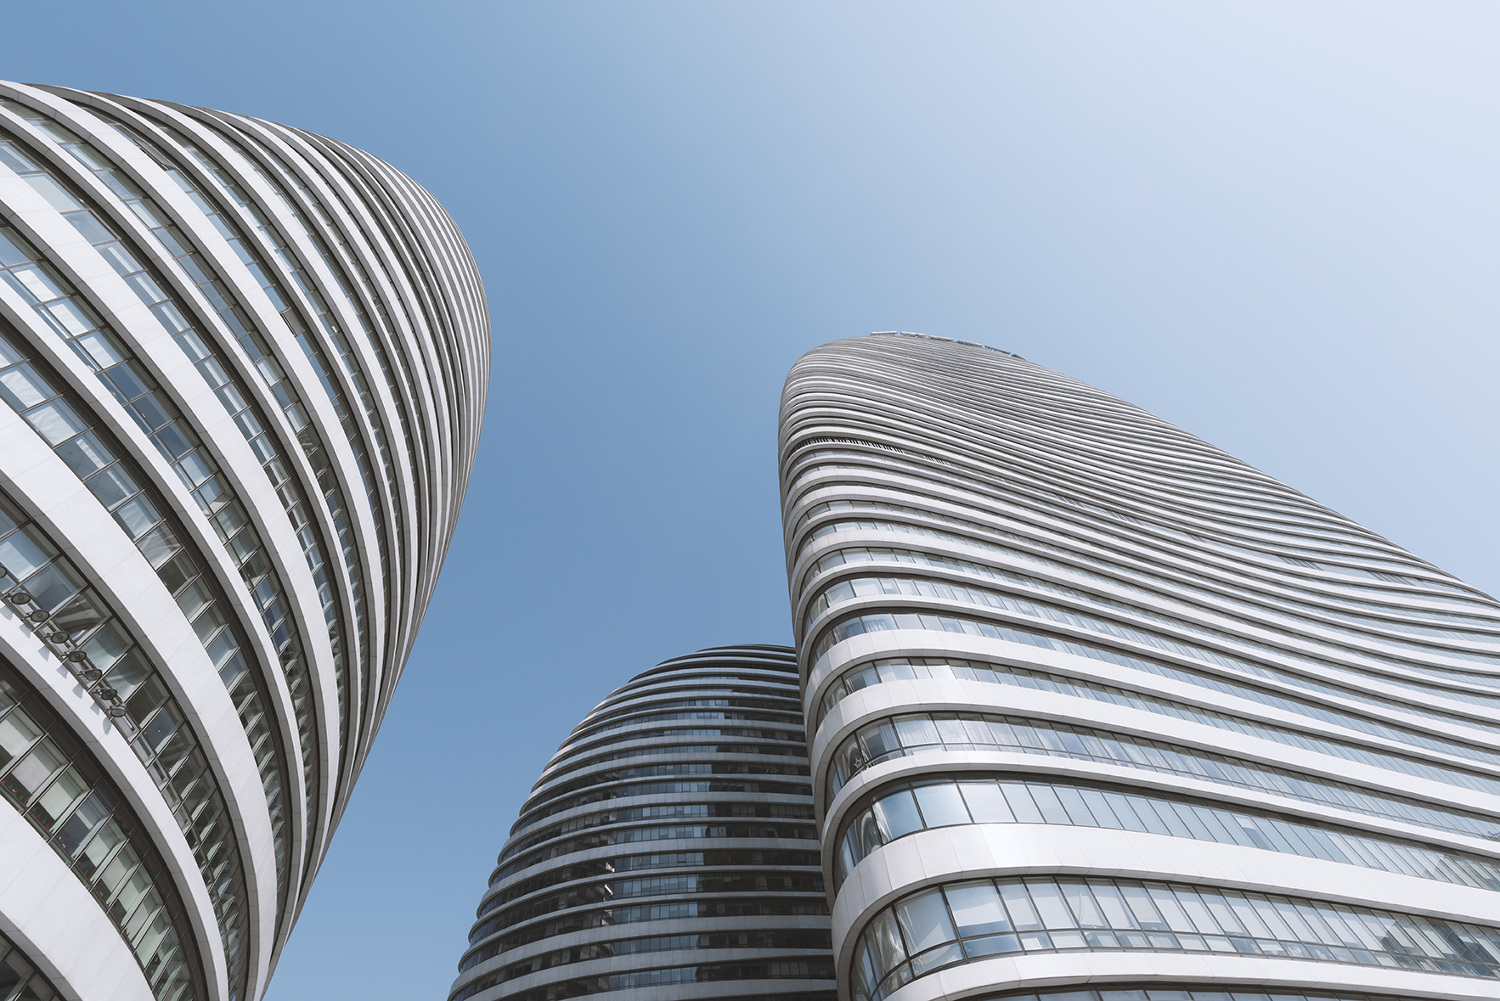 The curved facade of a Beijing building.